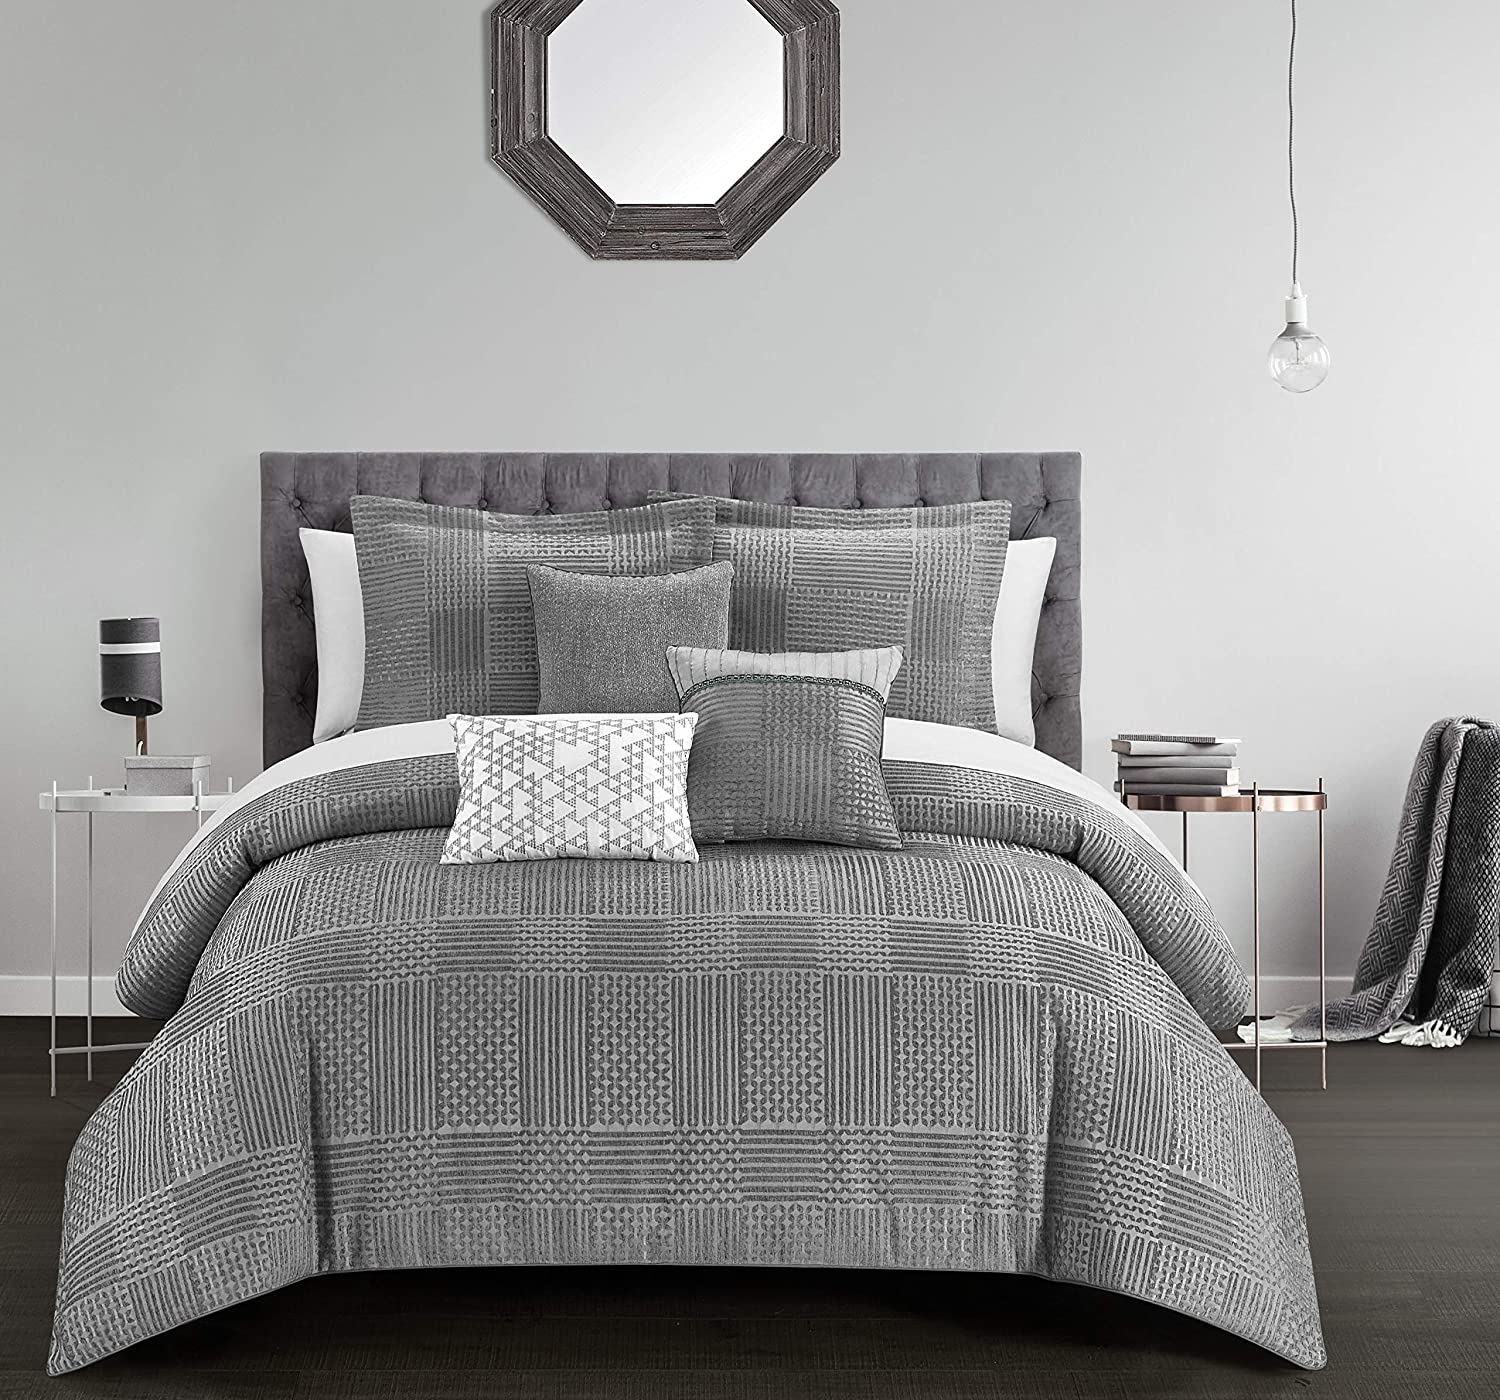 Chic Home Jodie 6 Piece Comforter Set Chenille Geometric Pattern Design Bedding - Decorative Pillows Shams Included, Queen, Grey